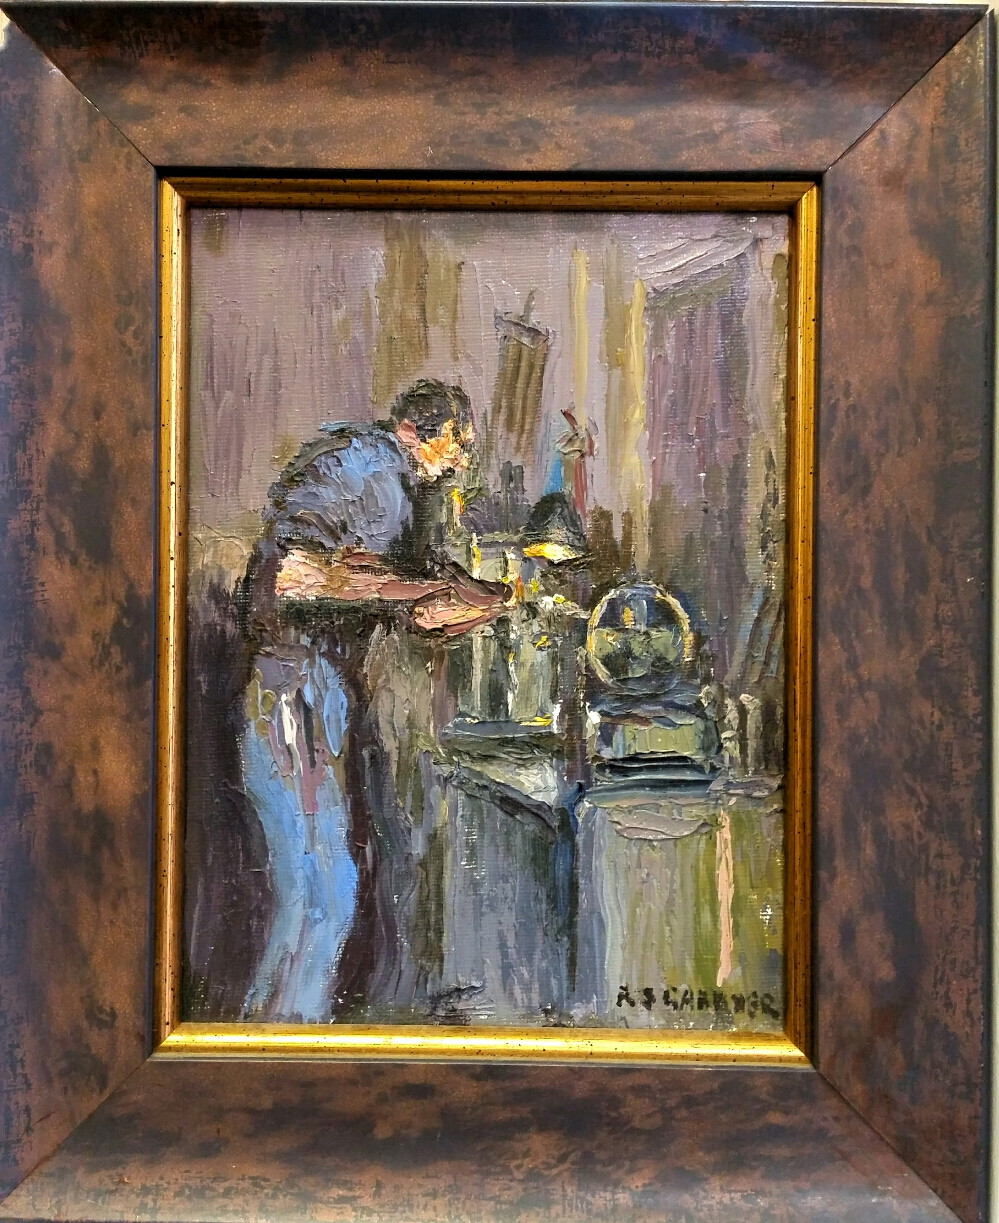 Man at Lathe I